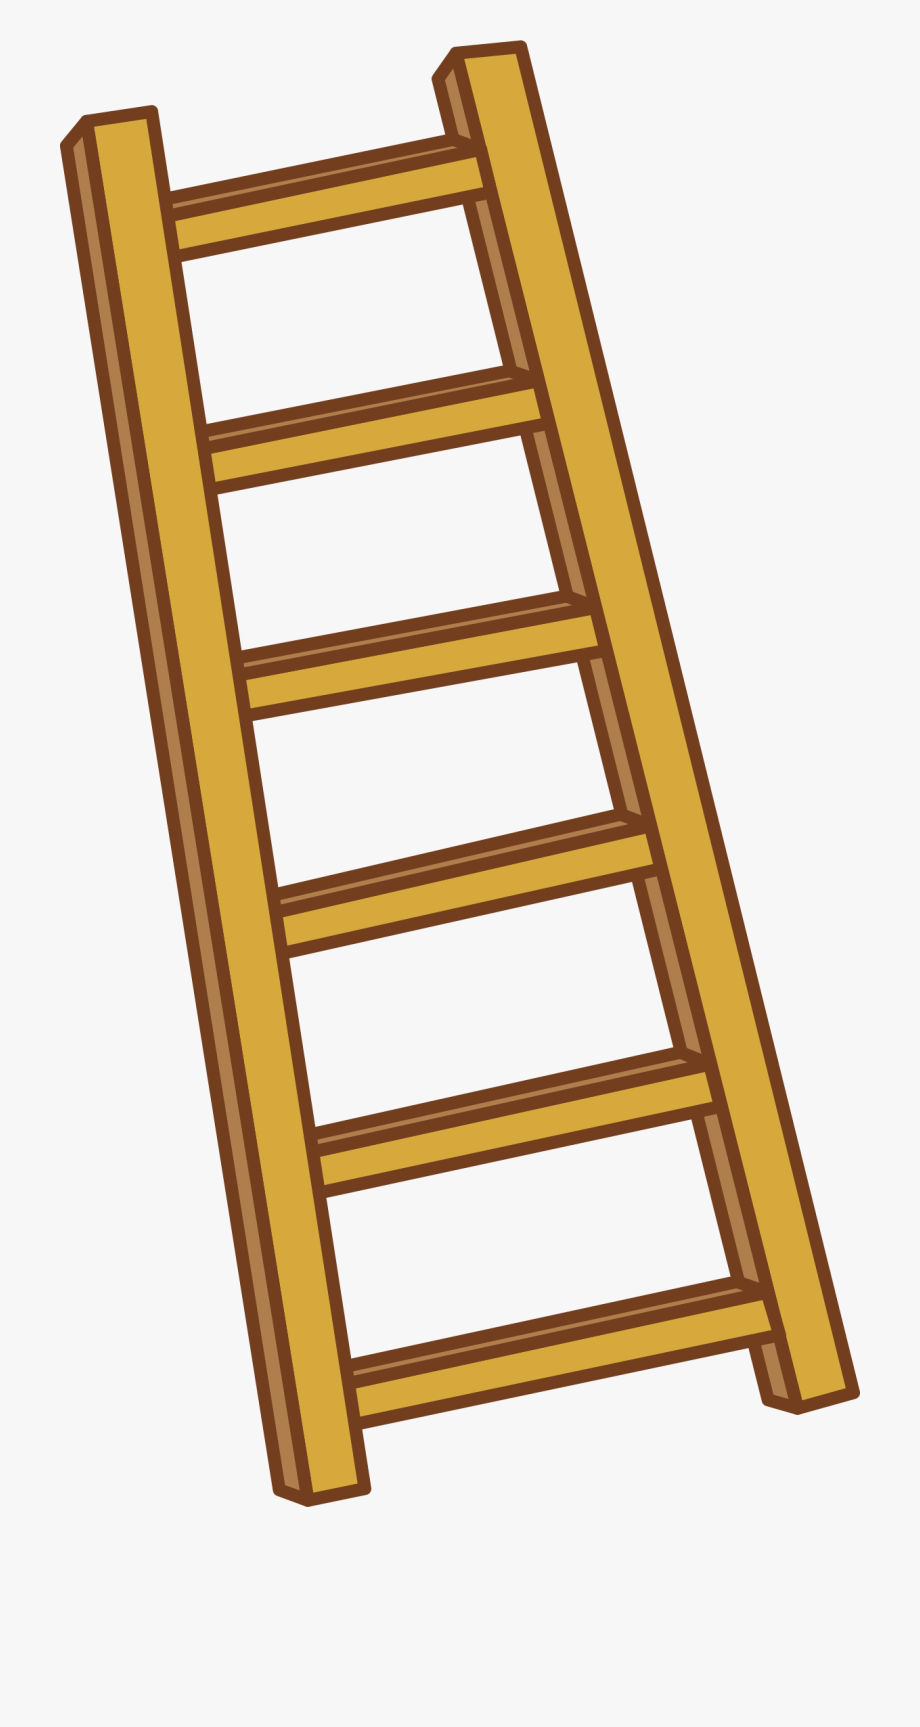 Permalink To 99 Simple Ladder Clip Art Inspiration.